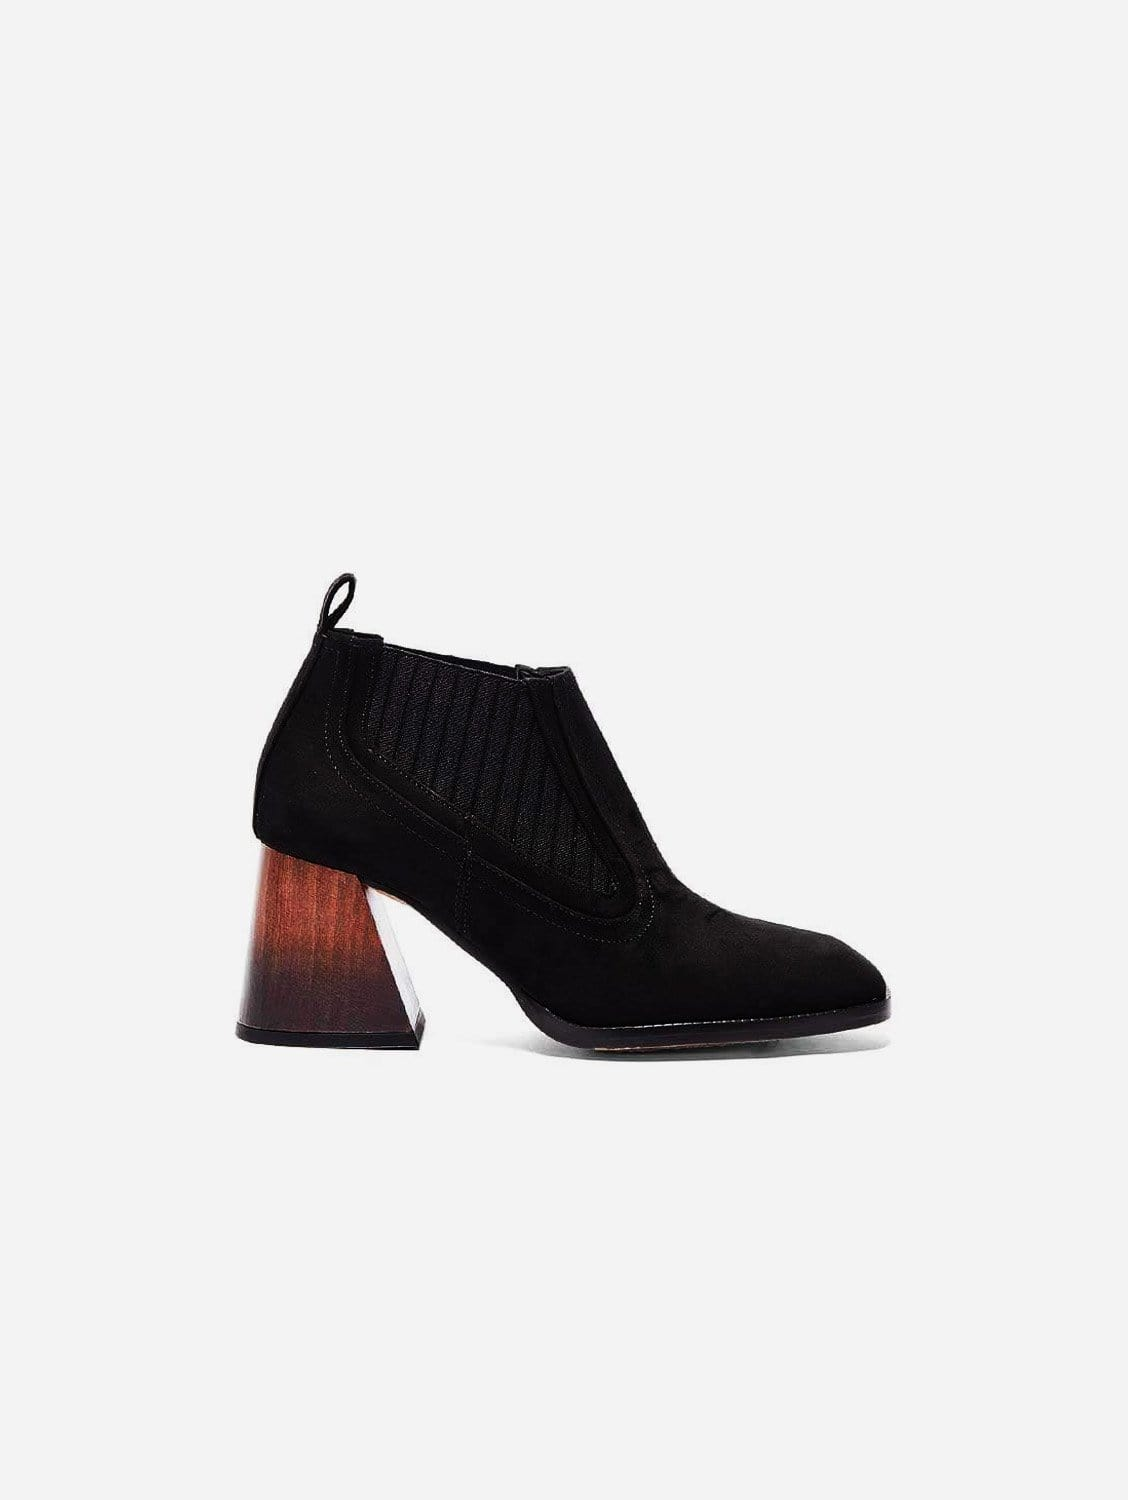 Lisa Recycled Polyester Vegan Suede Ankle Boot   Black